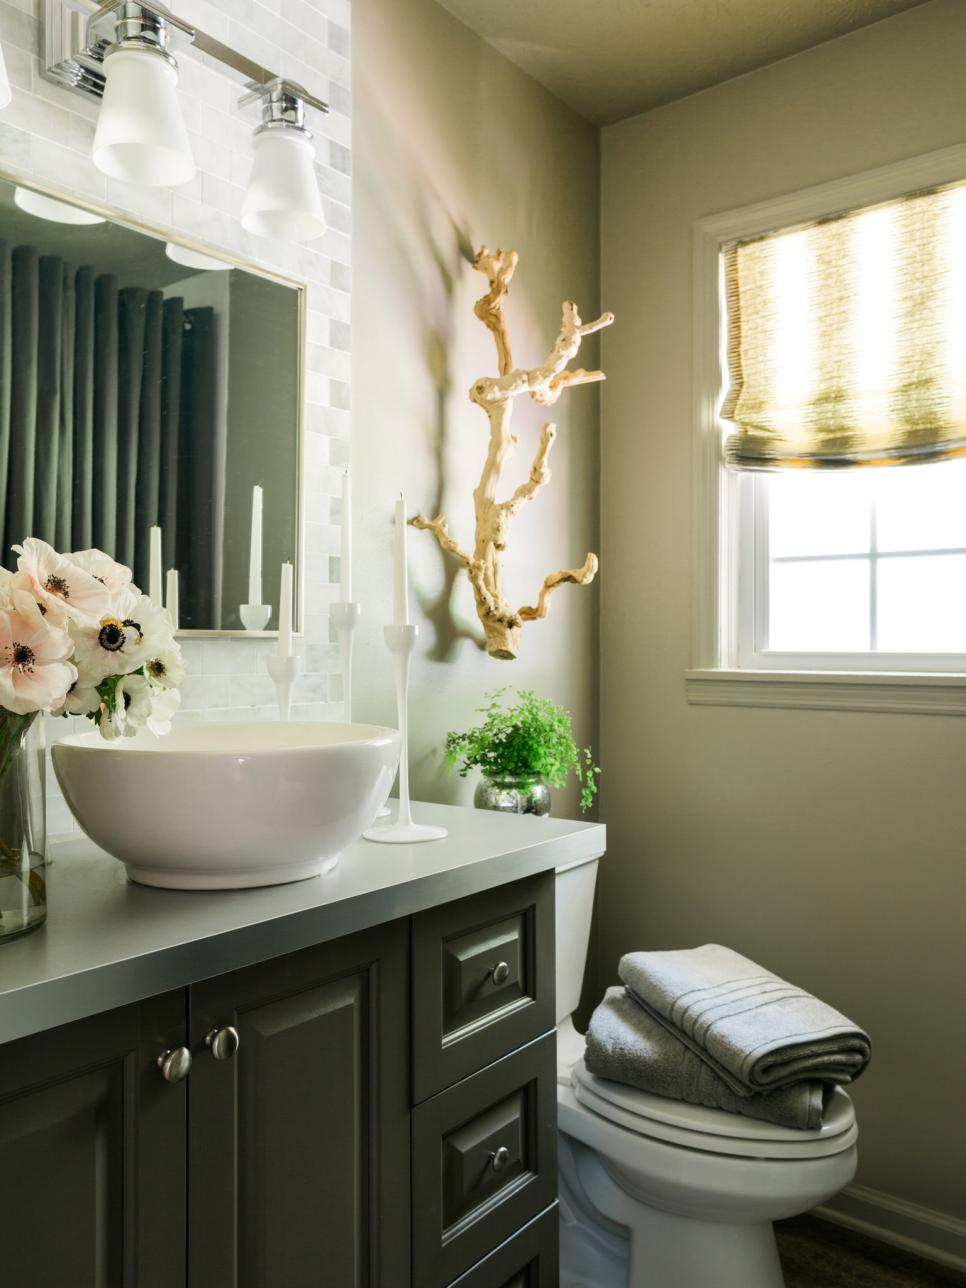 Freshen Up Your Powder Room For Holiday Guests HGTV - Powder bathroom ideas